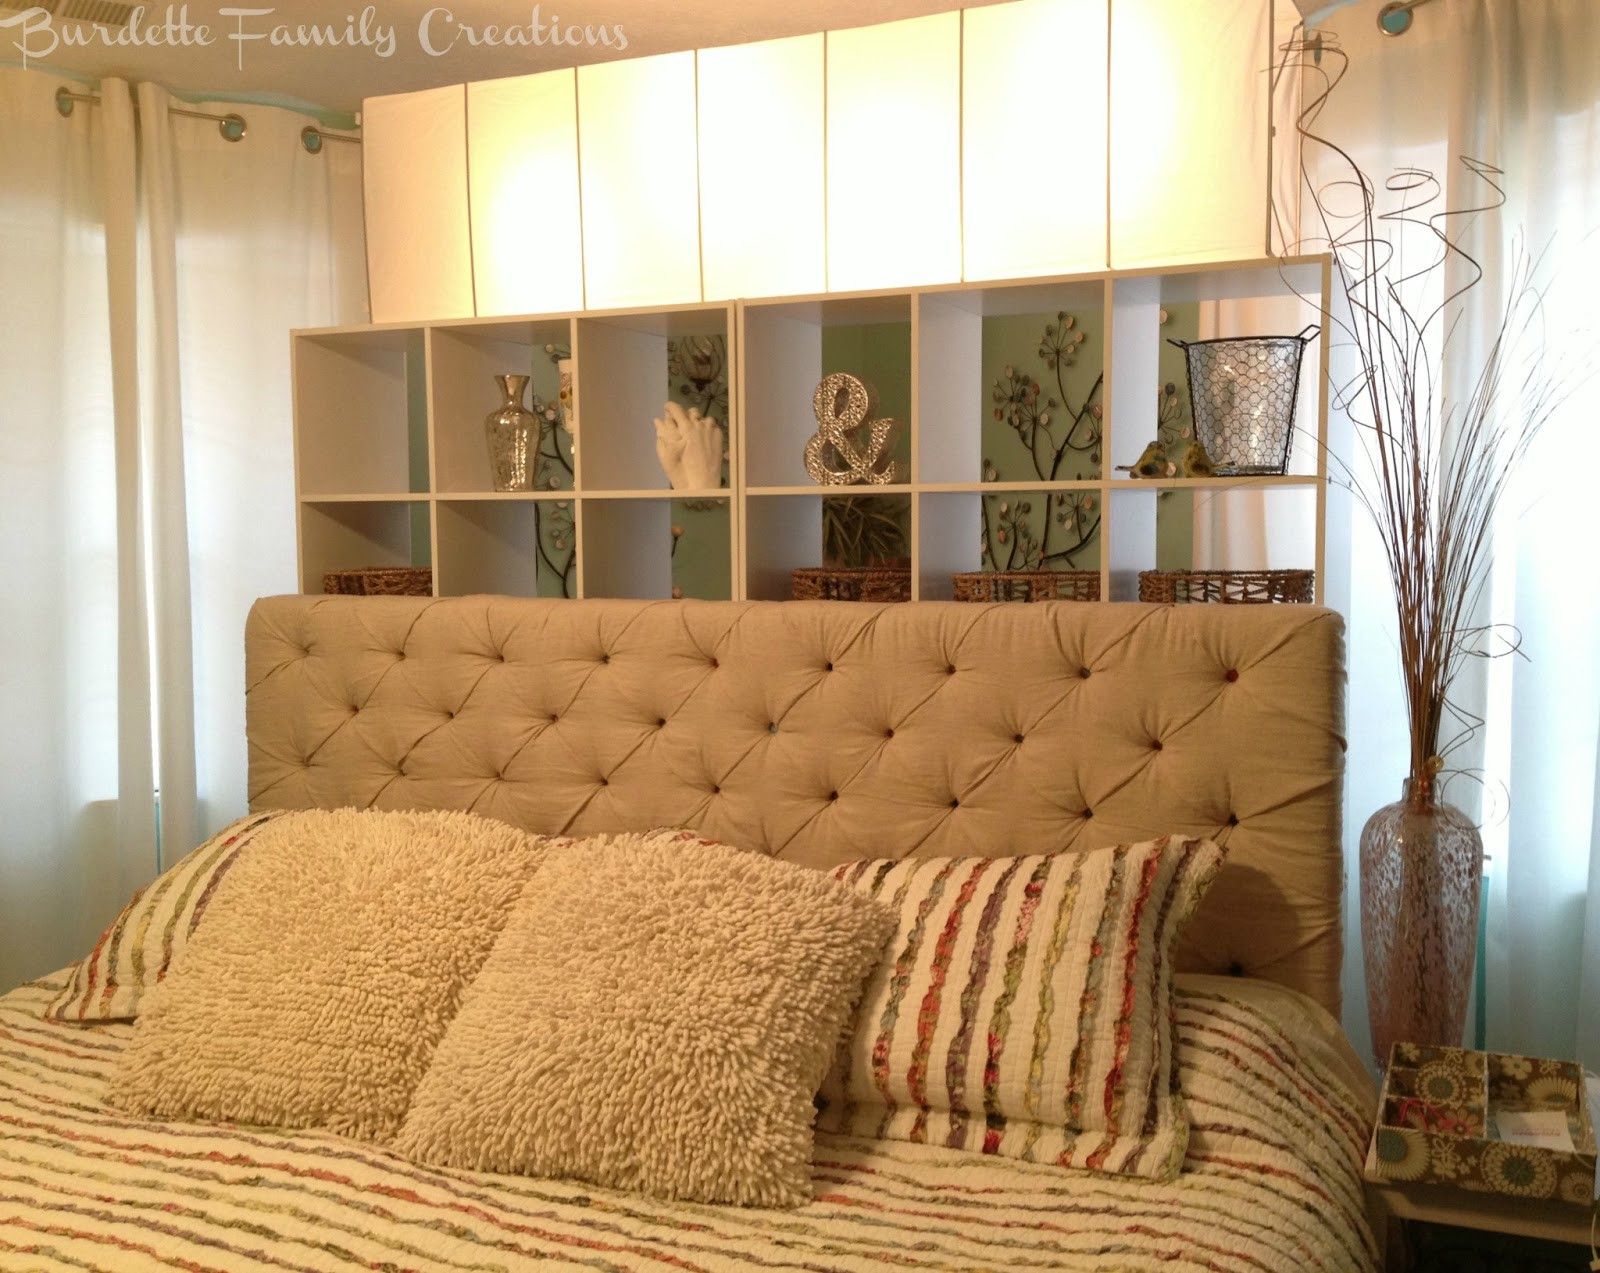 Best ideas about DIY Headboard Ideas For King Beds . Save or Pin Burdette Family Creations My DIY Tufted King Headboard Now.